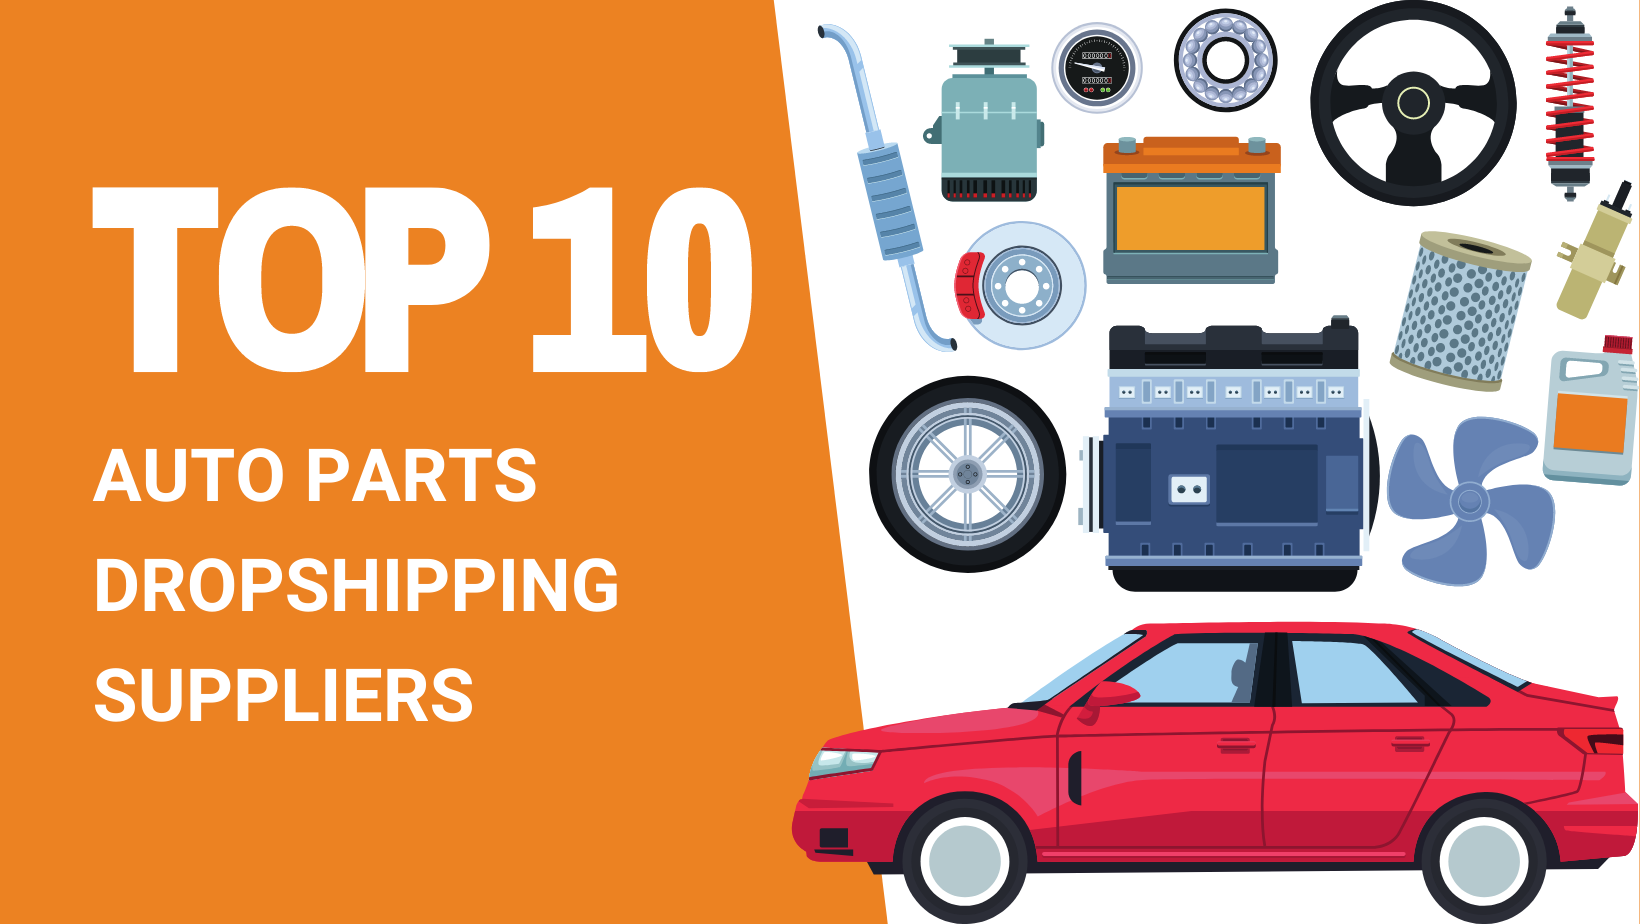 auto parts dropshipping suppliers